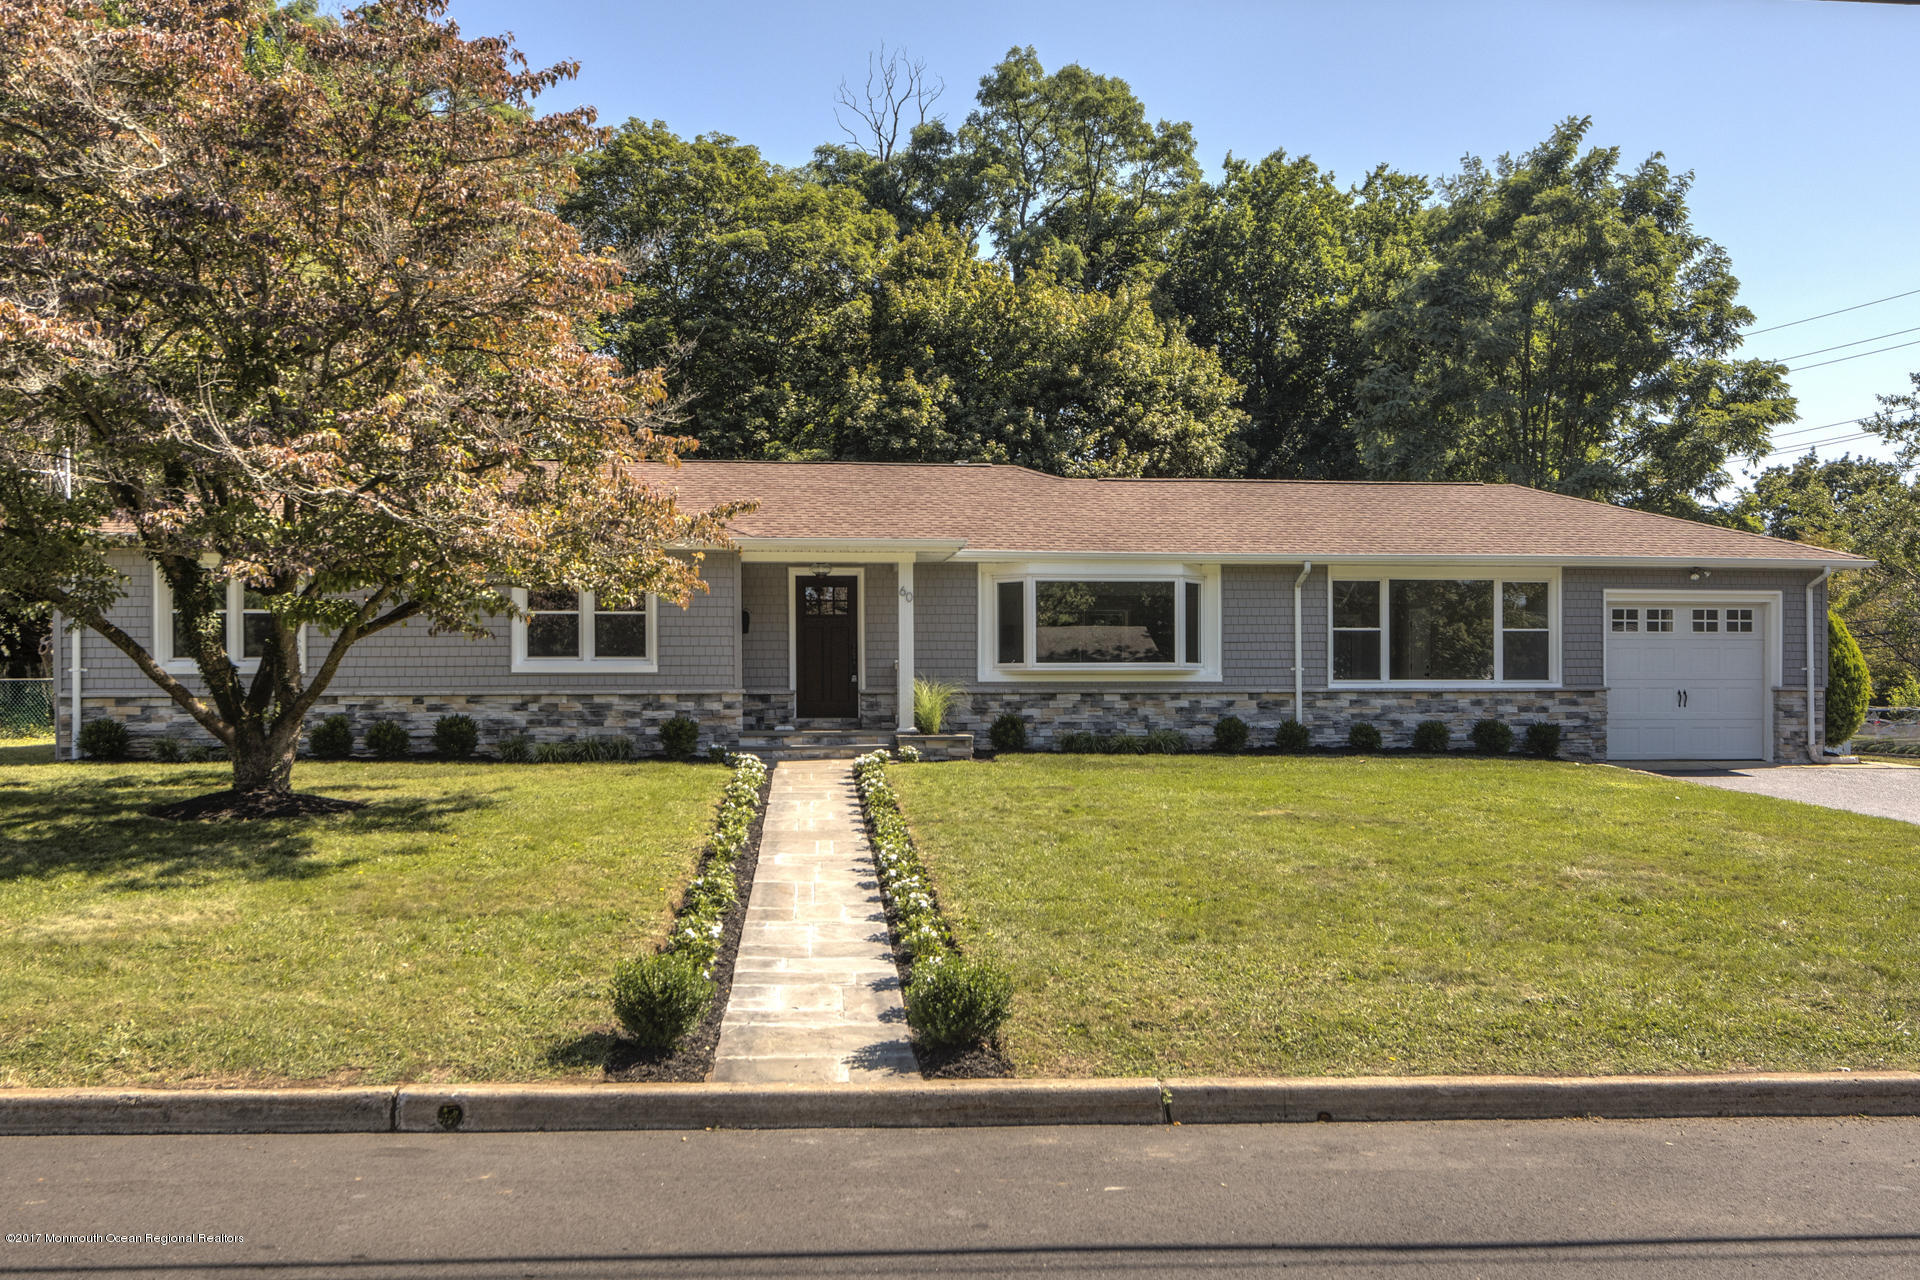 60 SILVERWHITE ROAD, LITTLE SILVER, NJ 07739